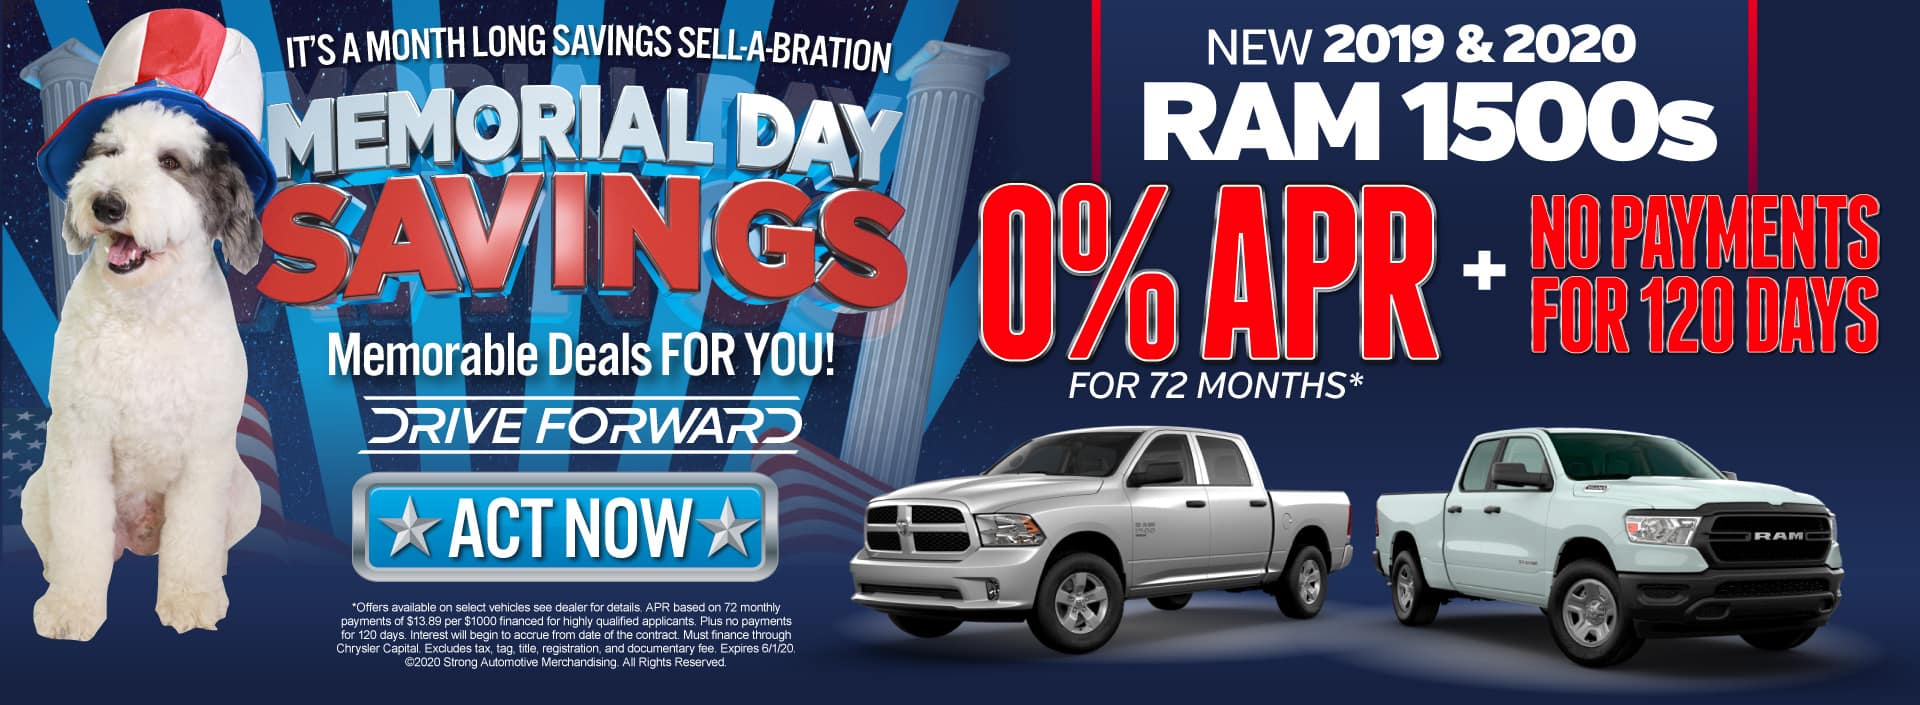 New 2019 and 2020 Ram 1500 Now With 0% APR for 72 months and No Payments for 120 Days